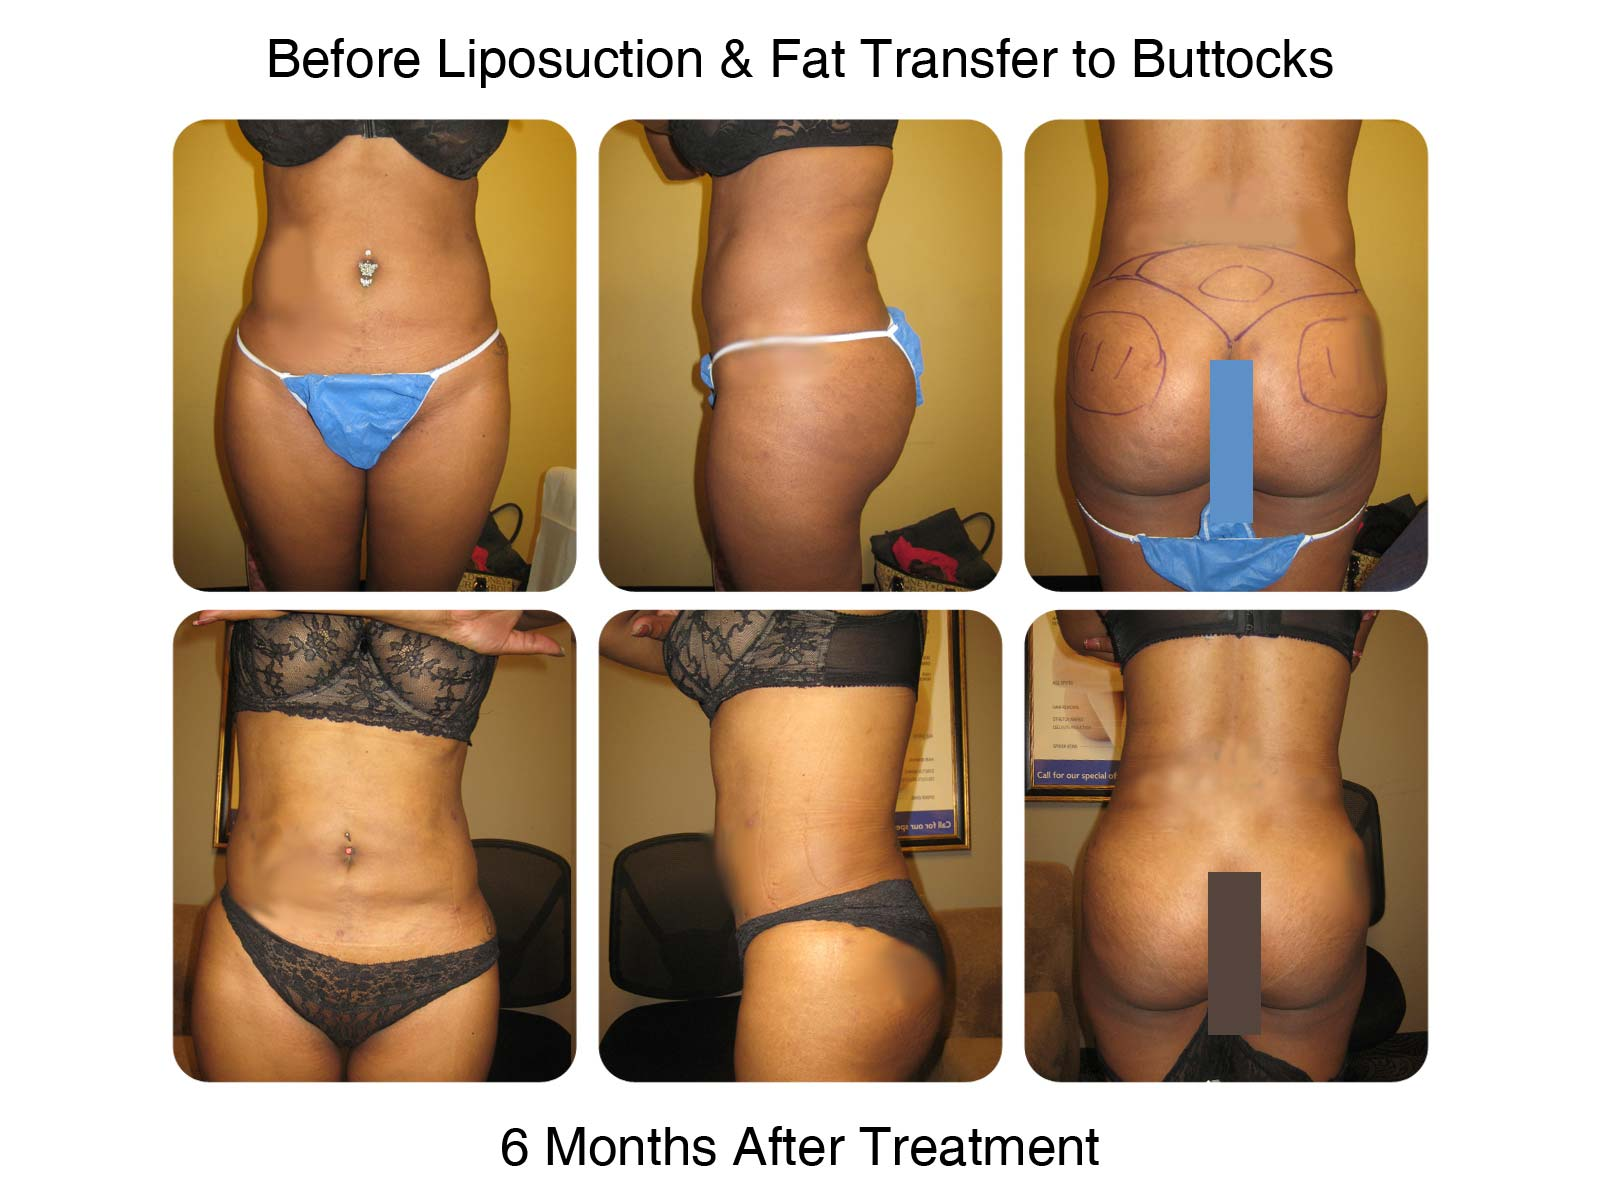 Brazilian Butt Lift Fat Transfer Before and After 7